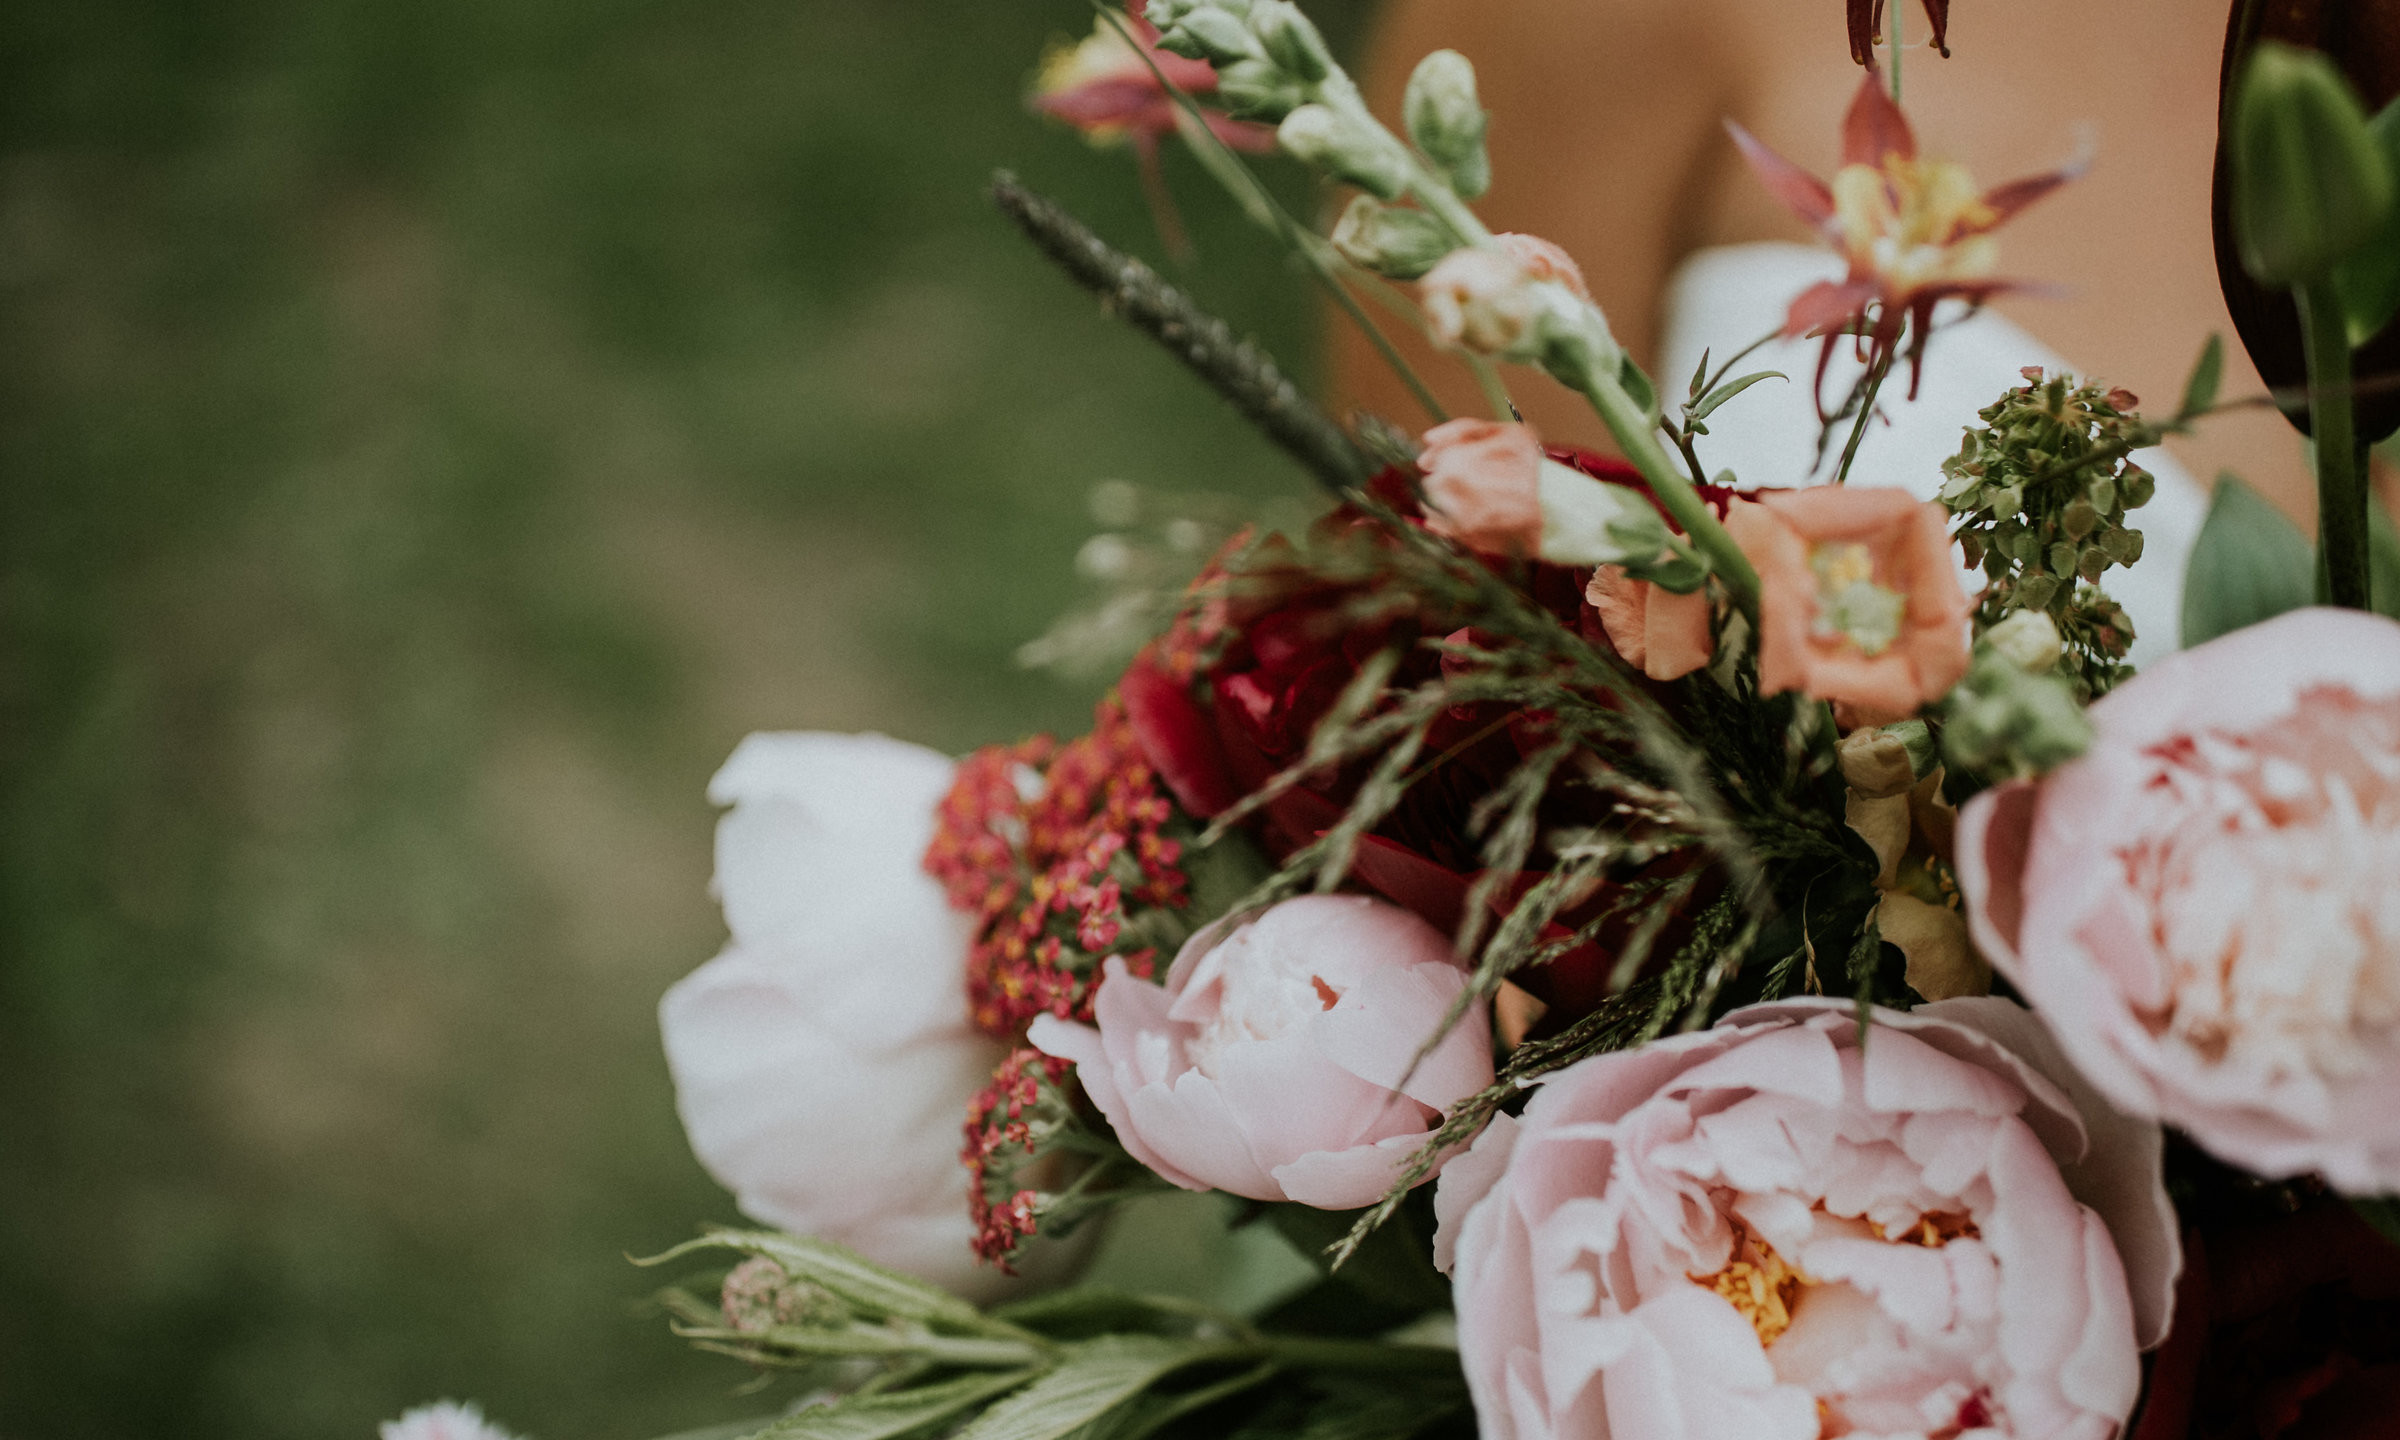 Design by Franzie's Flower Design Captured by JOSHUA VELDSTRA PHOTOGRAPHY Flowers from Scenic Place Peonies